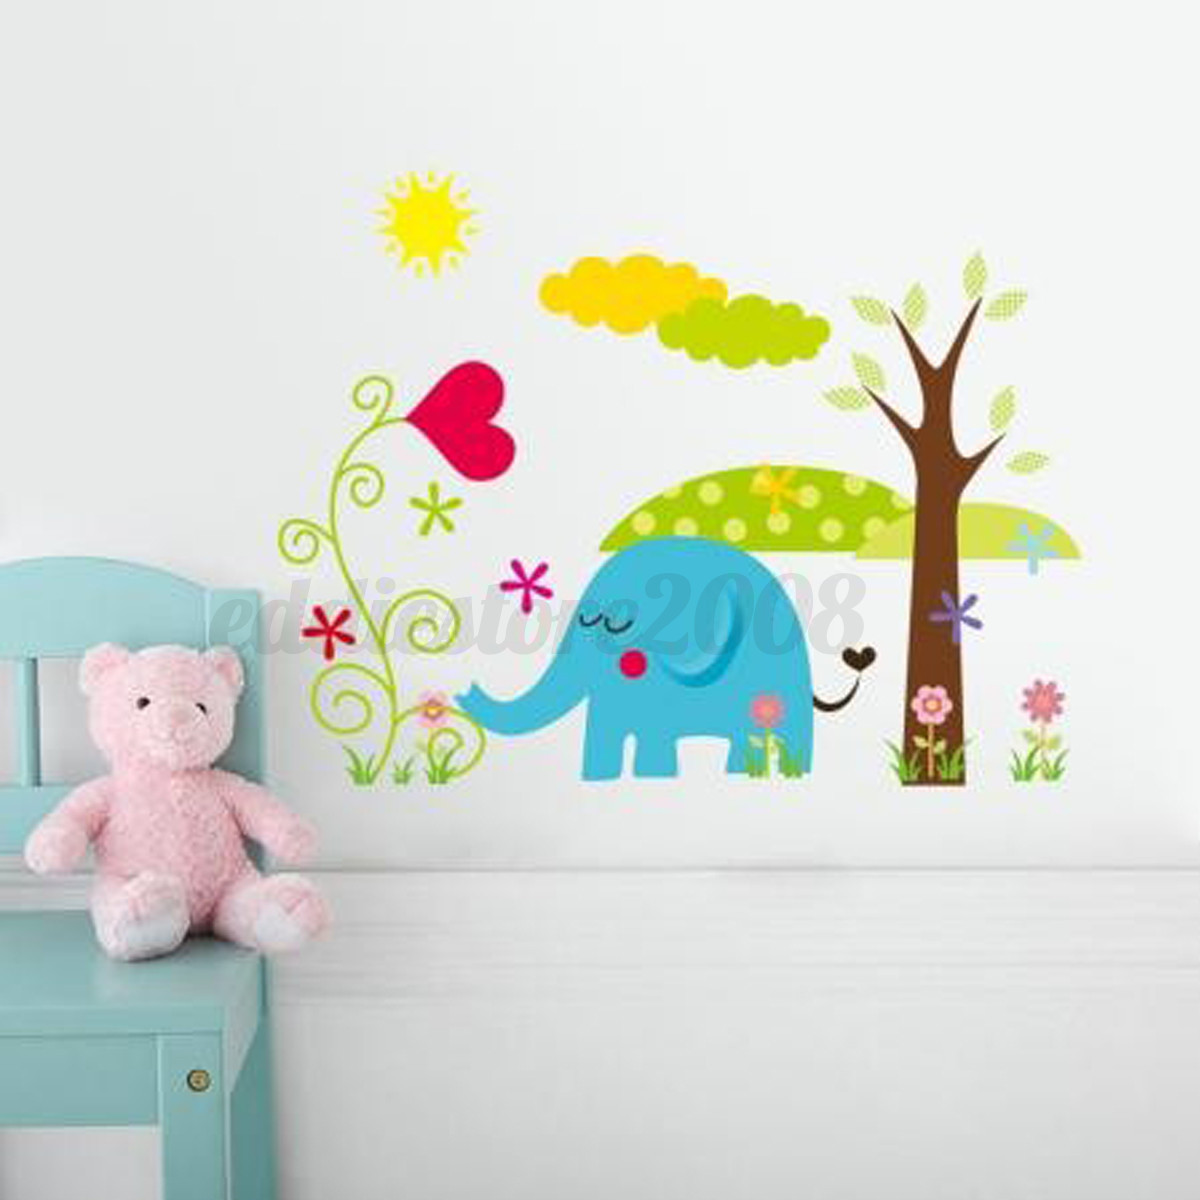 Diy Wall Decor For Baby : Diy jungle animal removable wall sticker decal kid baby